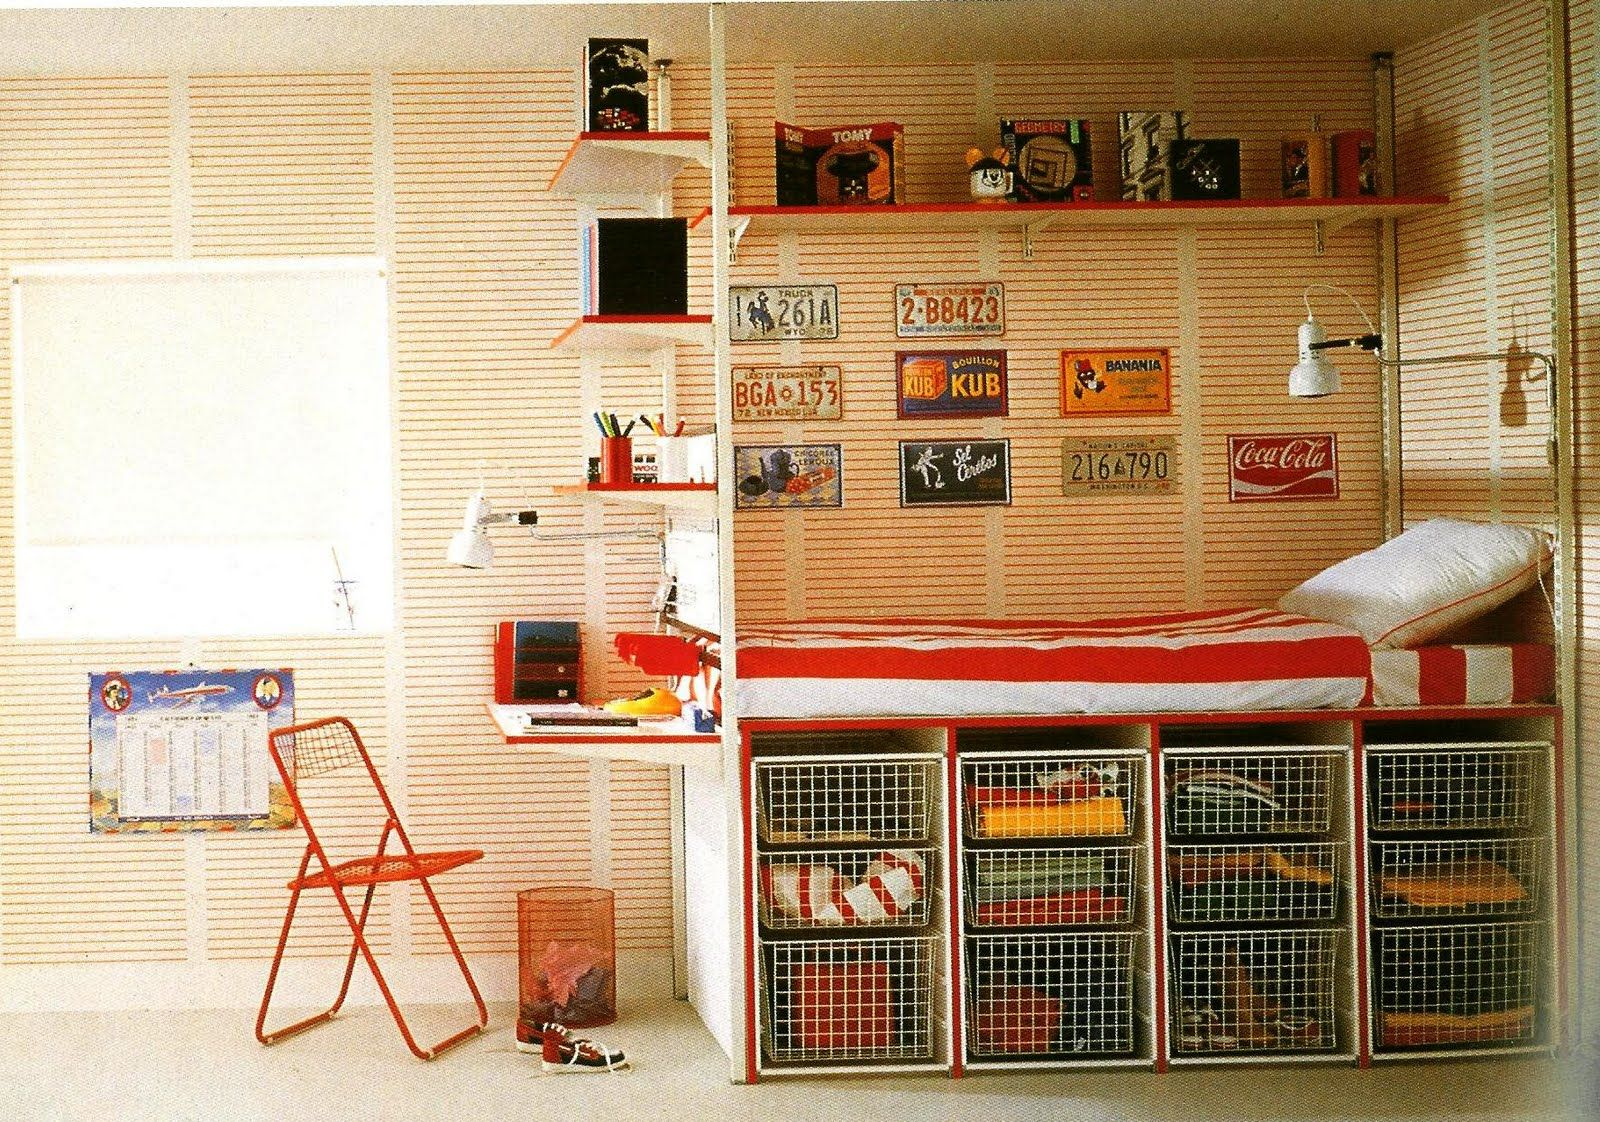 17 Best images about 80s Dream Bedroom on Pinterest   Radios  Bedroom  wallpaper and My little pony. 17 Best images about 80s Dream Bedroom on Pinterest   Radios